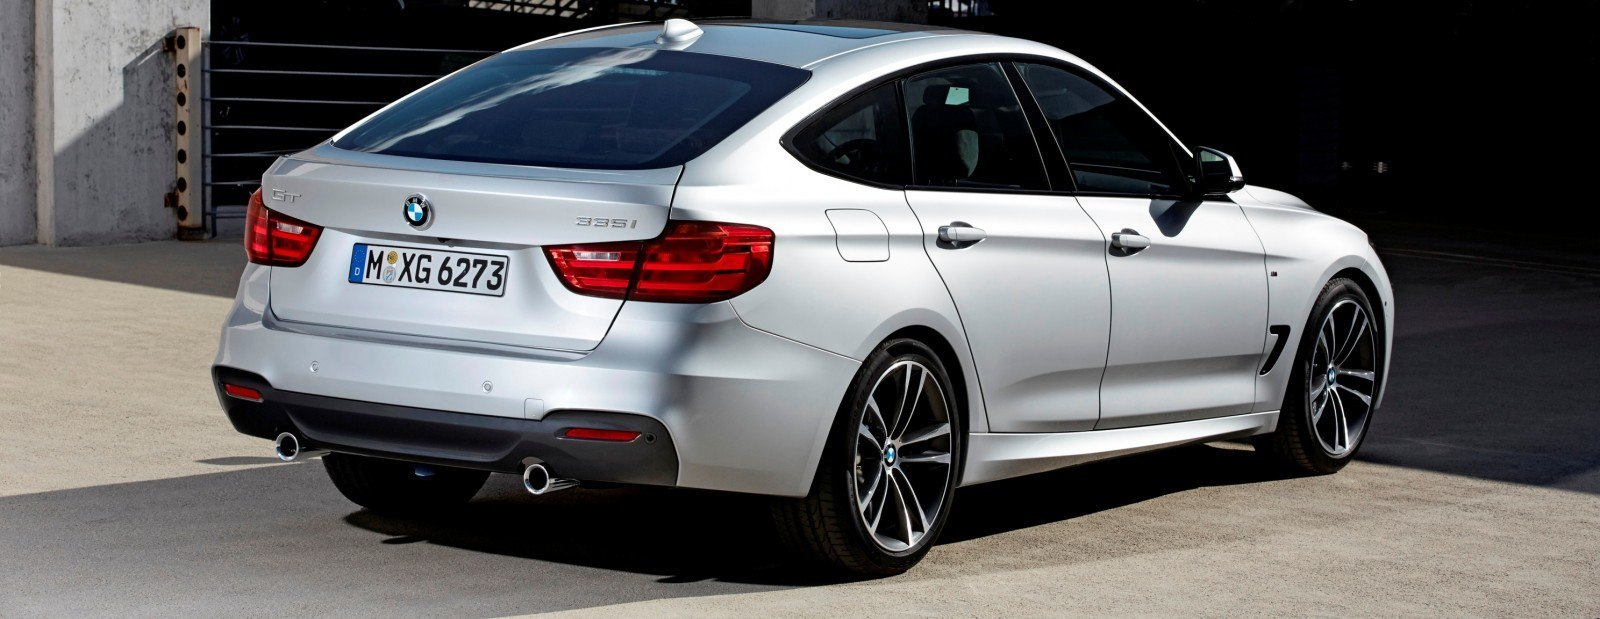 Best of Awards - 1000 miles at 100MPH - 2014 M Sport BMW 335i GT 70